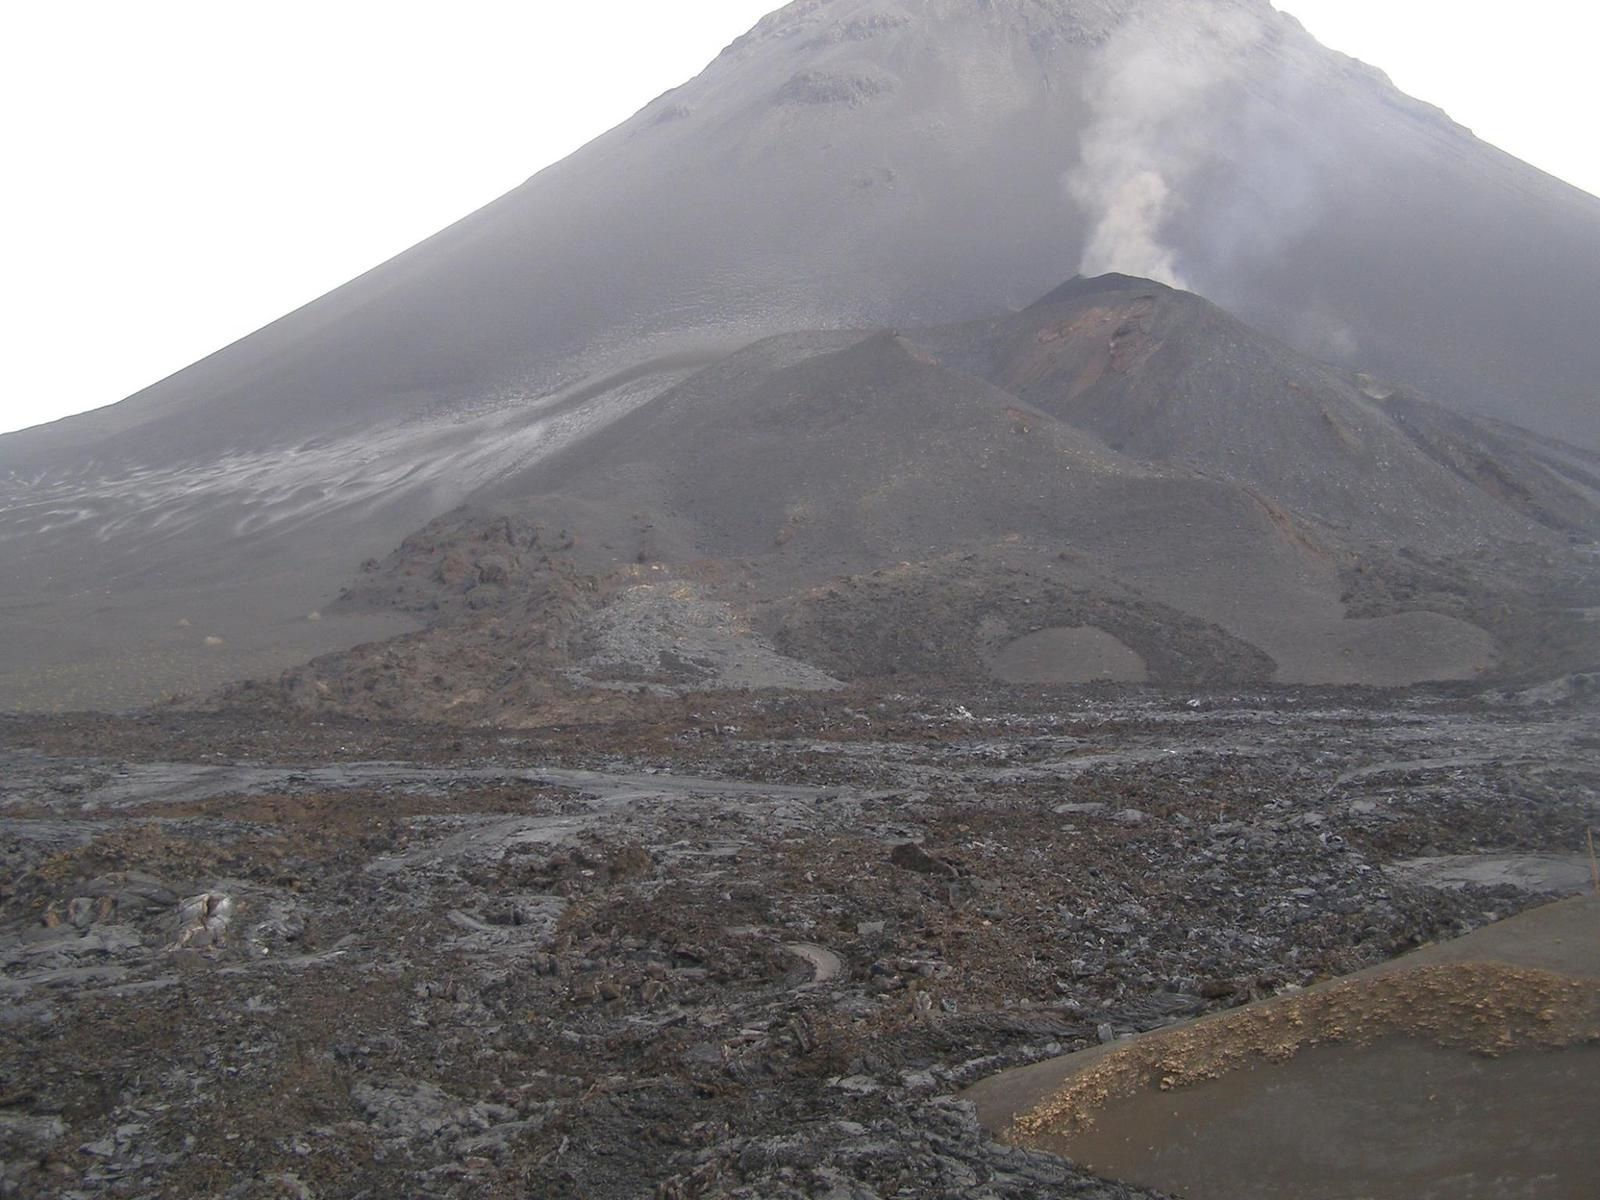 Fogo / Cape Verde - on 08.01.2015 - decline of the eruption - photo OVCV